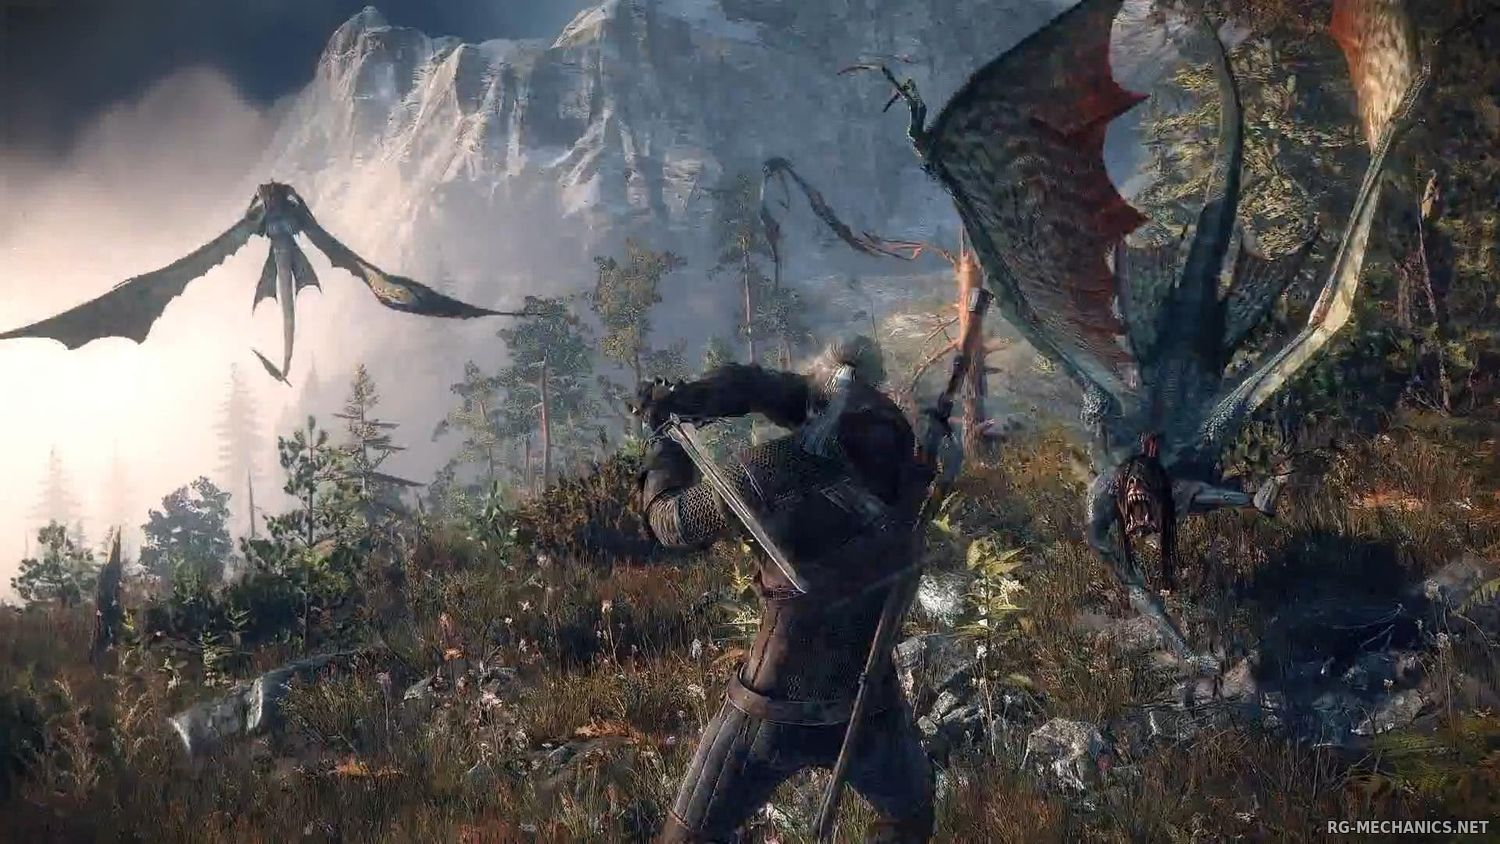 Скриншот 3 к игре The Witcher 3: Wild Hunt + The Witcher 3 HD Reworked Project (mod v. 12.0) (2015) скачать торрент RePack